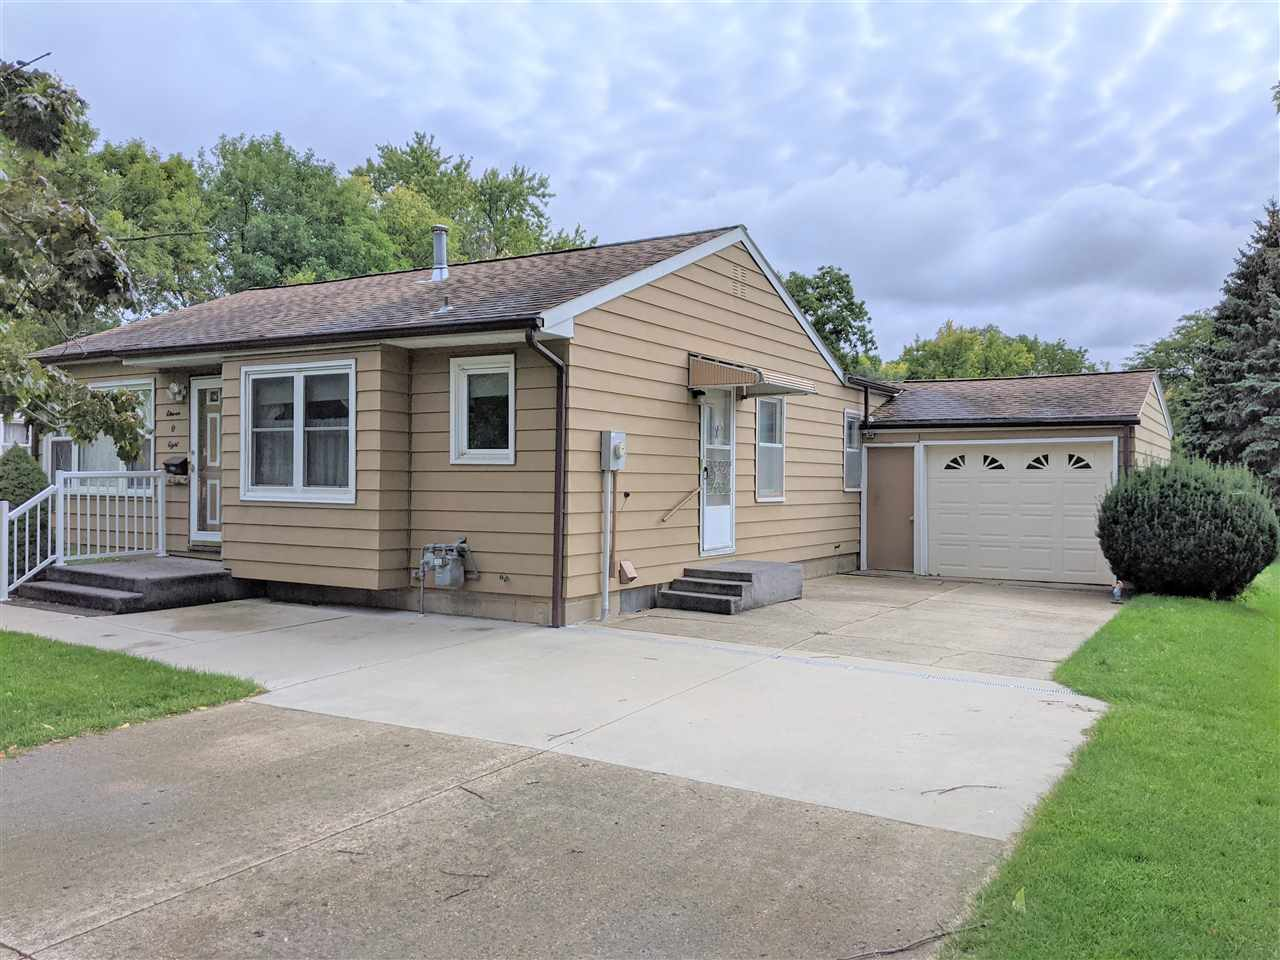 1108 5th Ave N, Estherville, IA 51334